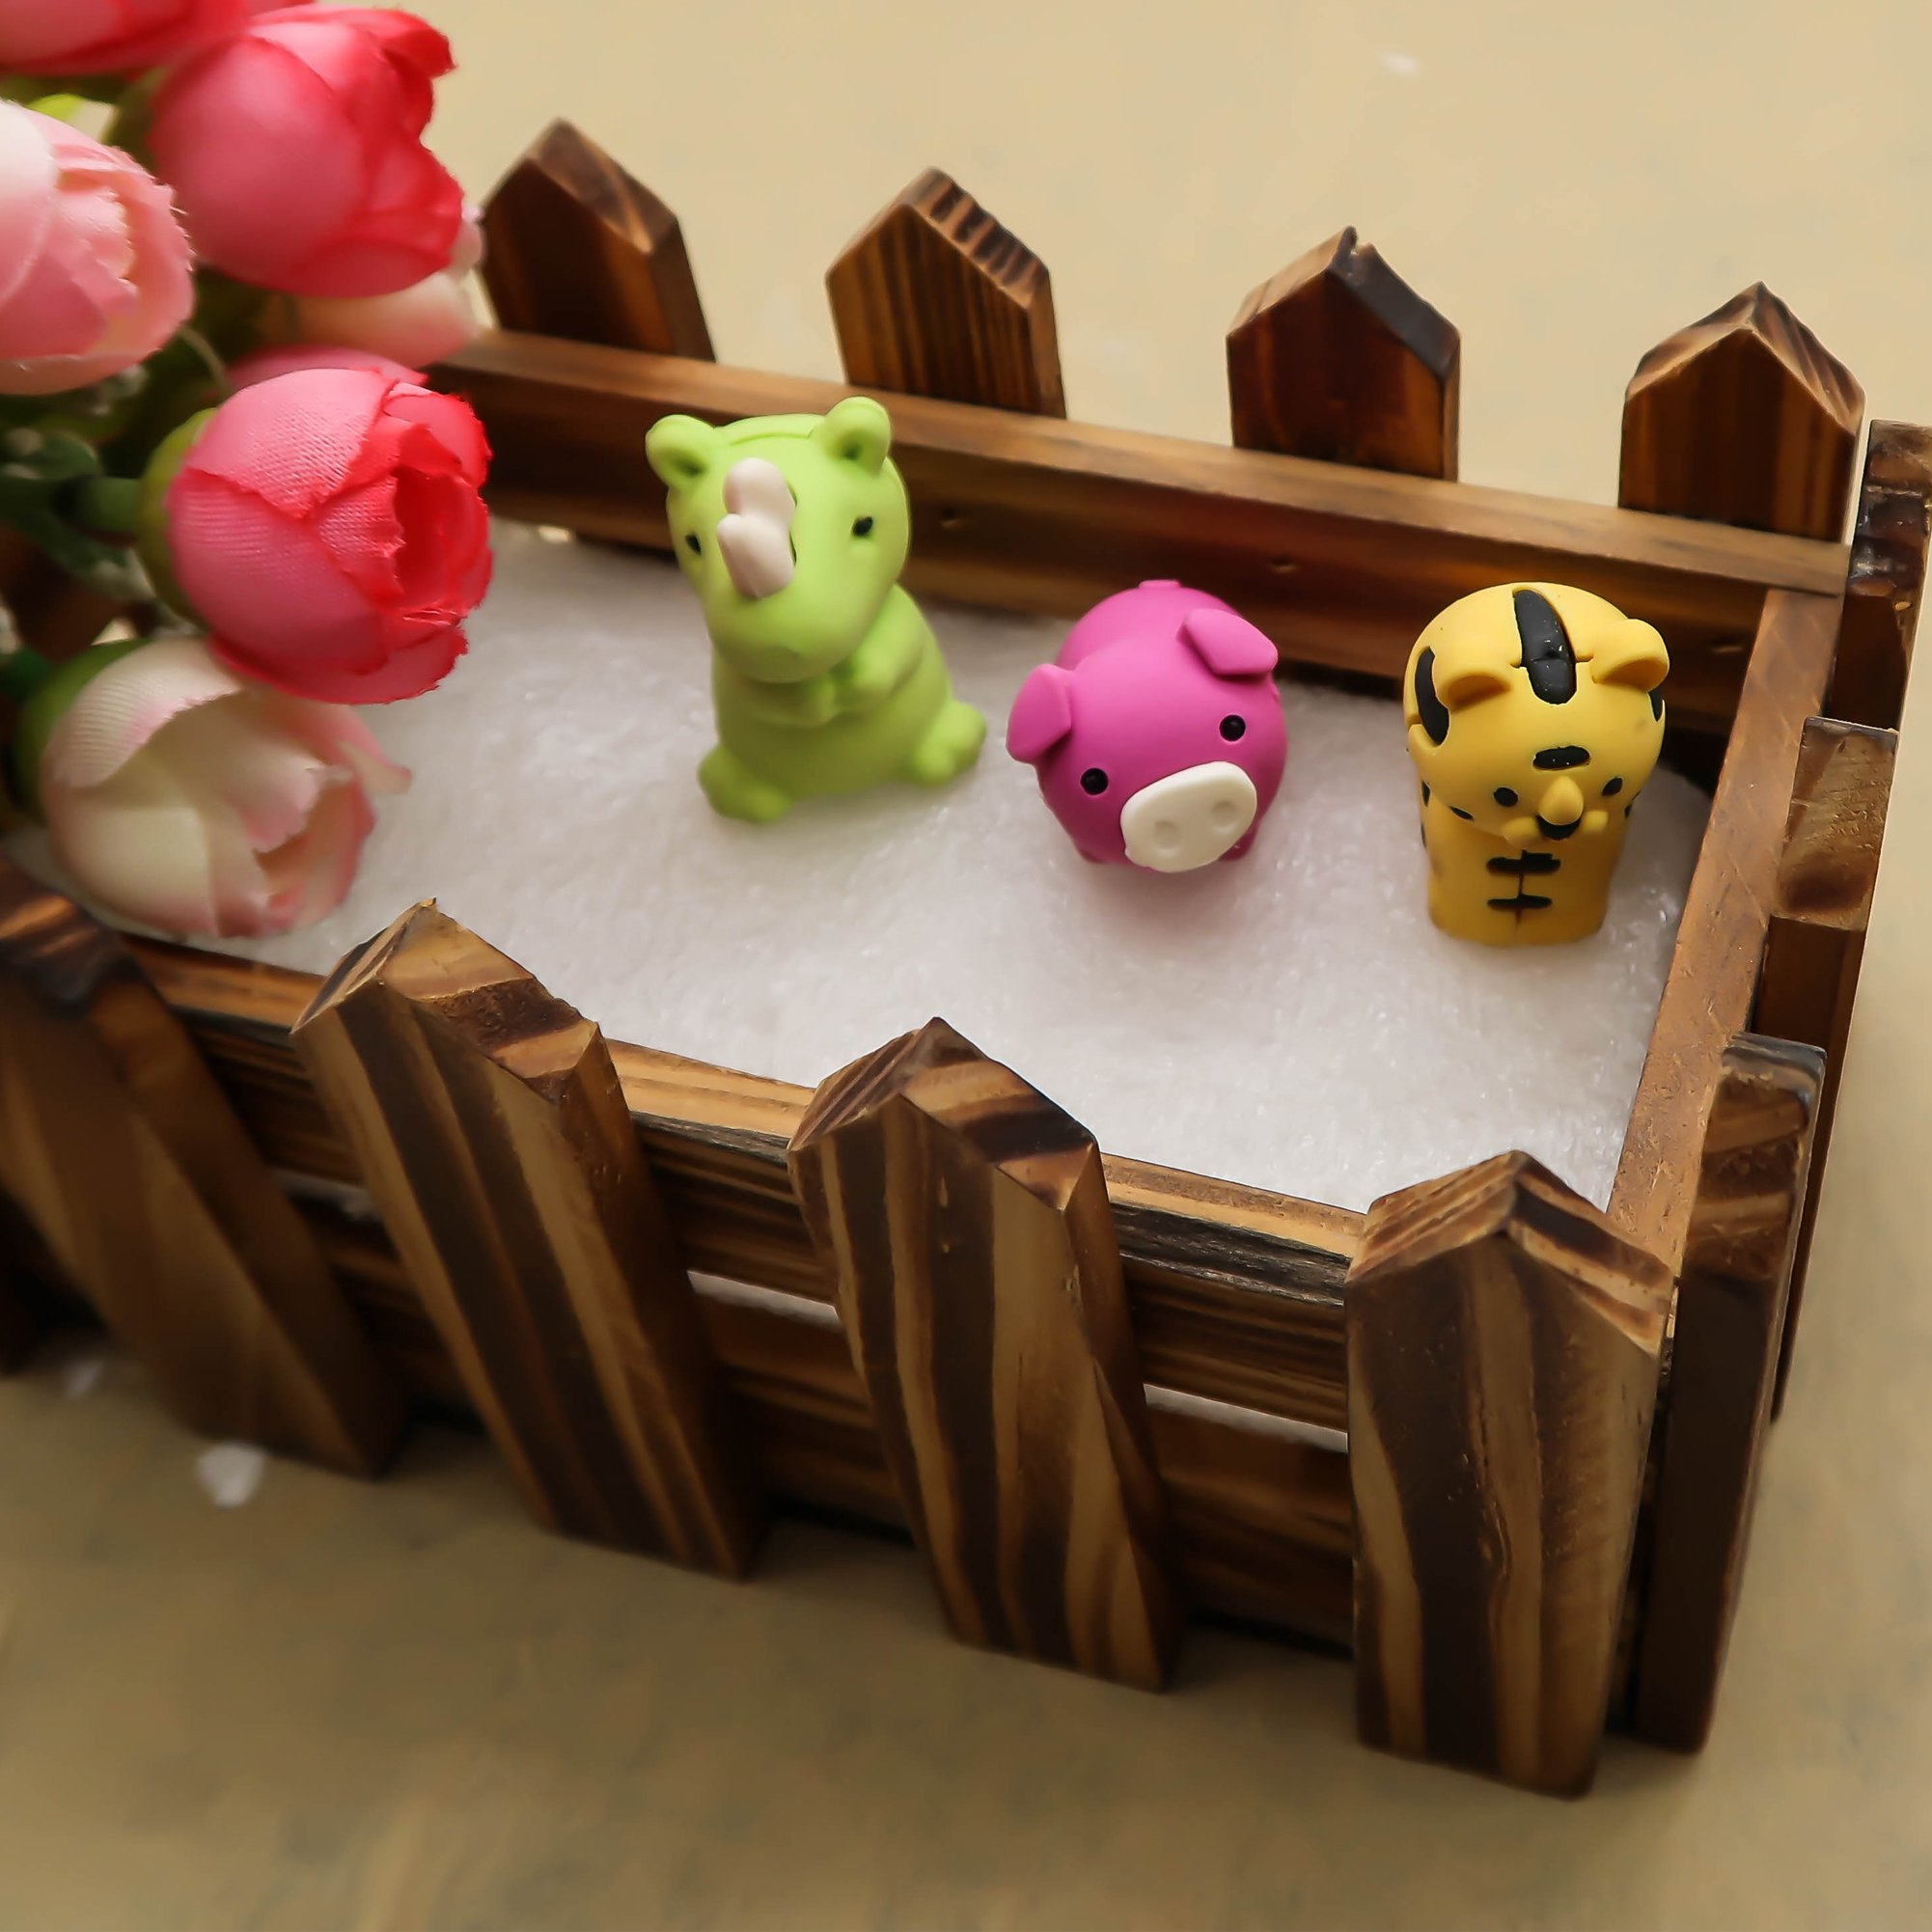 TOAOB 28pcs Adorable Puzzle Animals Erasers Non-Toxic for Kids Fun Games and Collection with Plastic Box by TOAOB (Image #5)